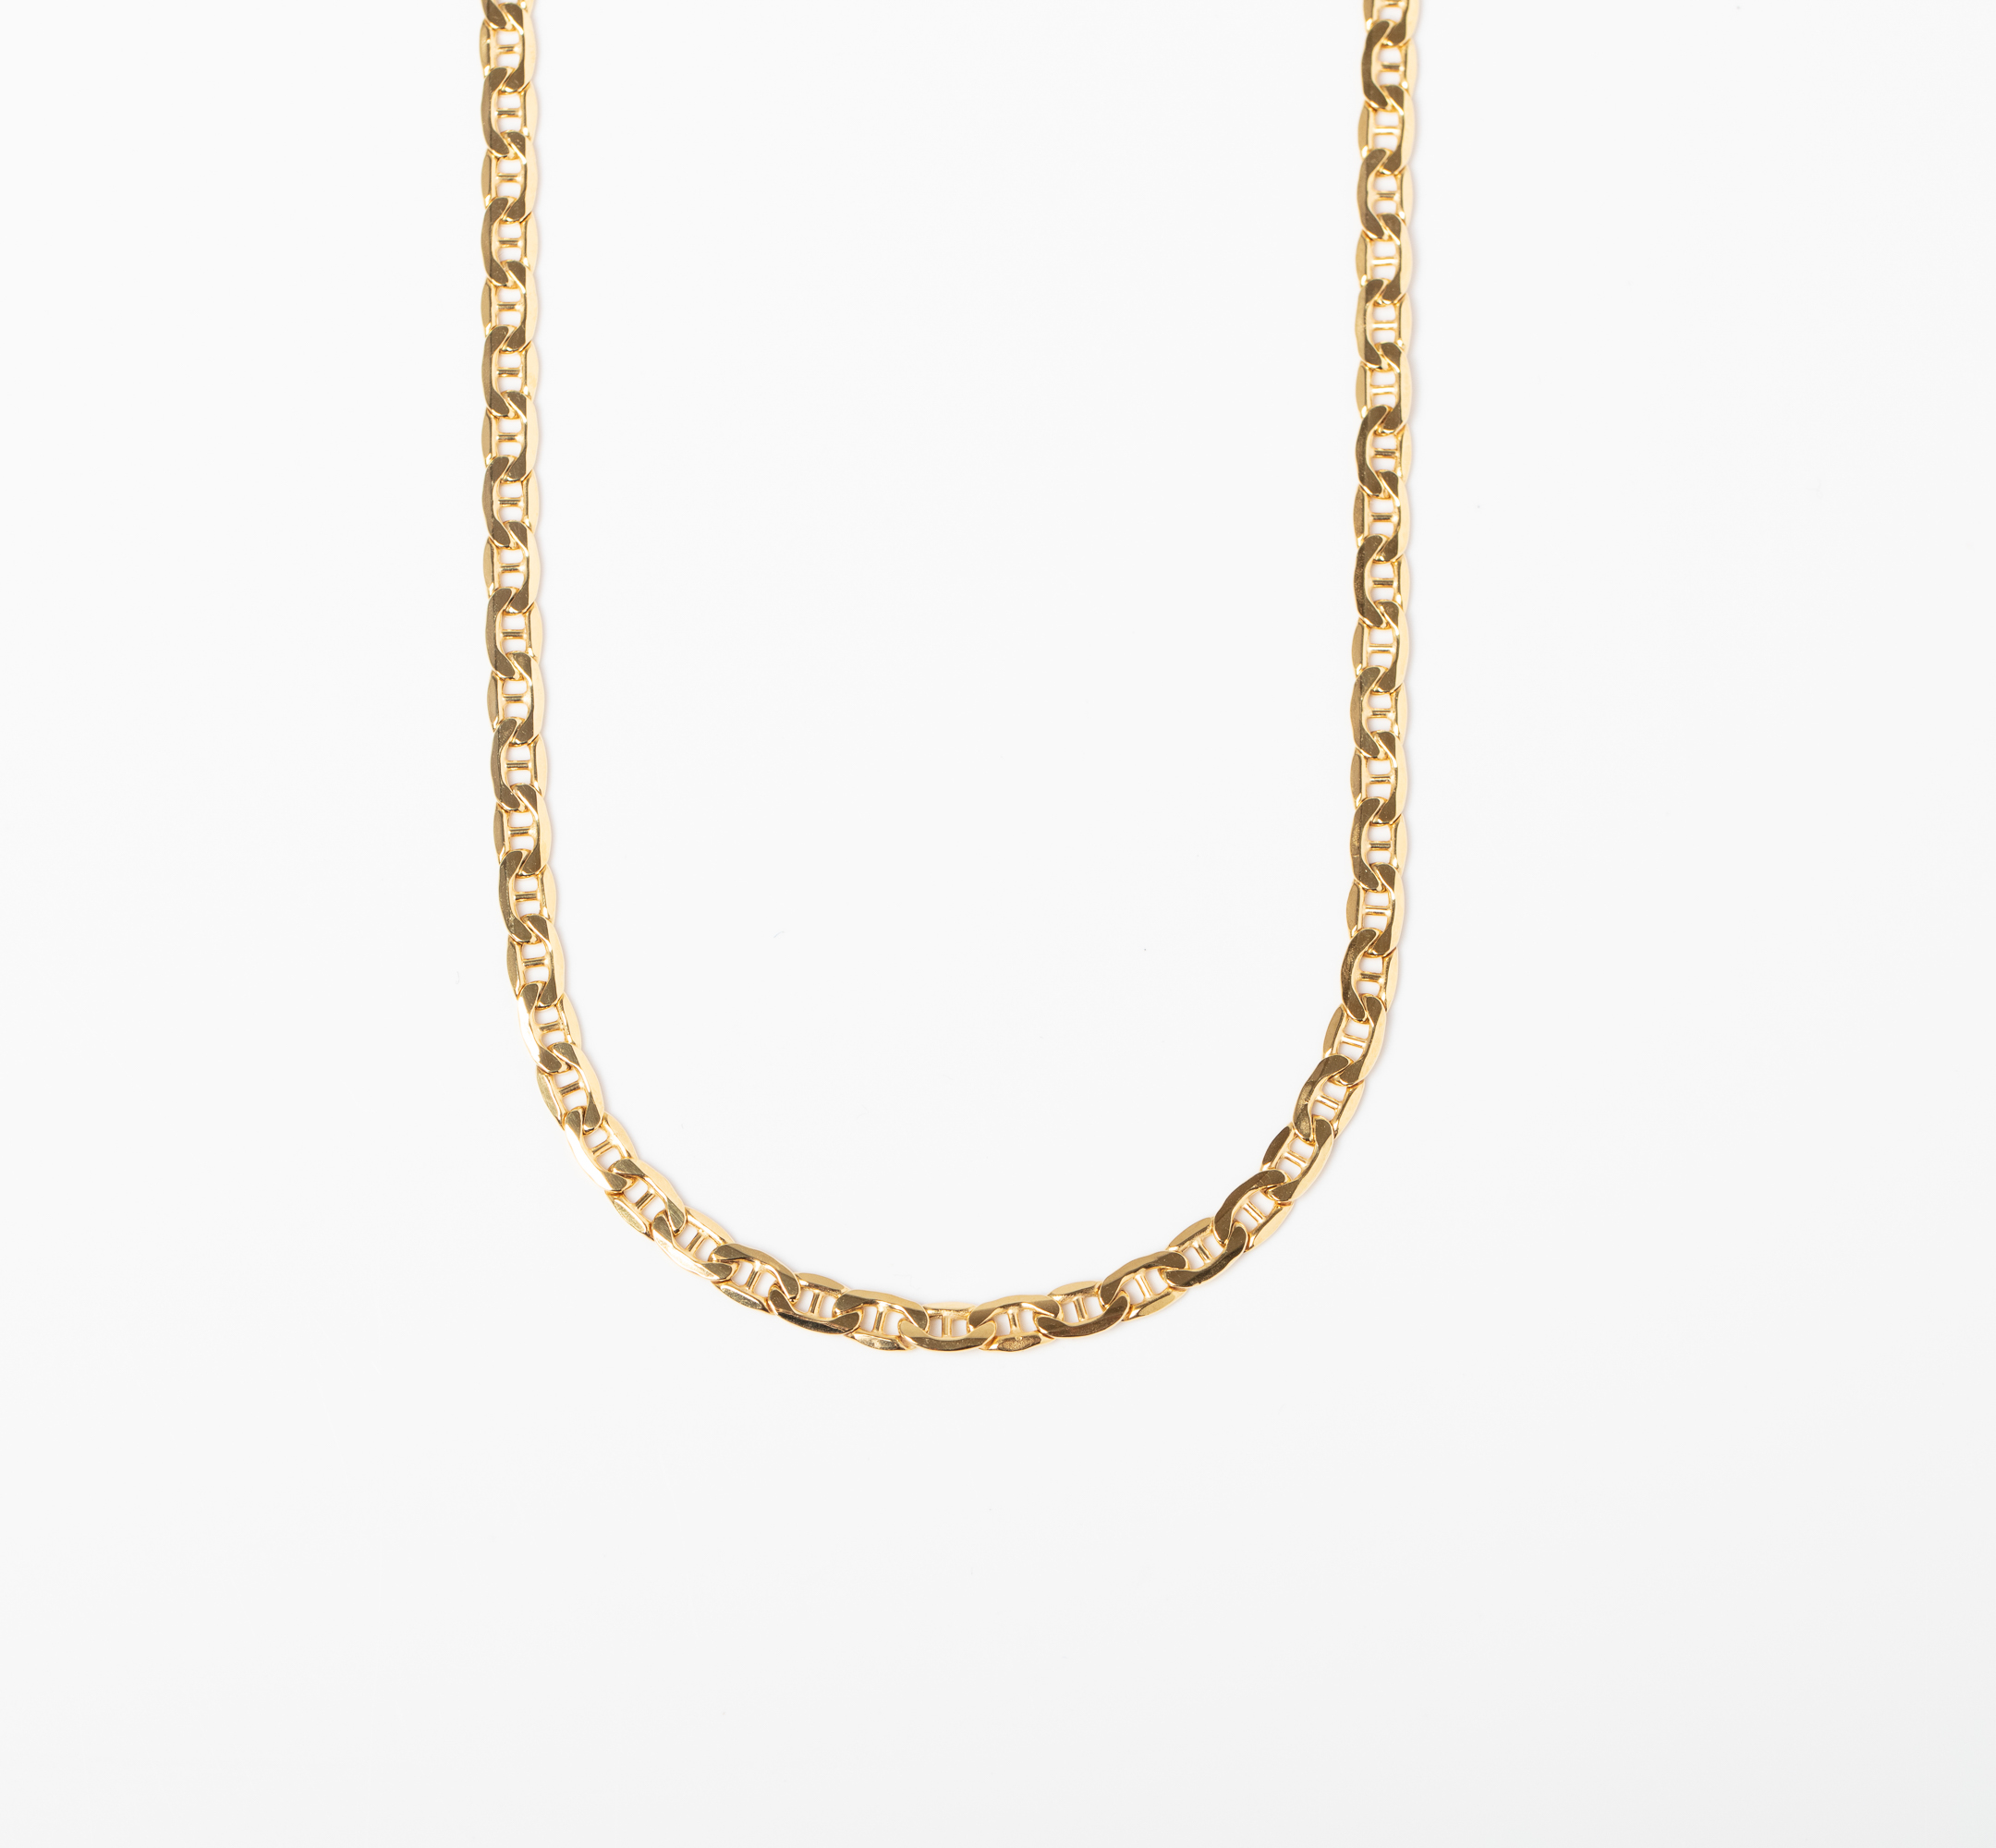 A 9CT GOLD MARINER LINK CHAIN